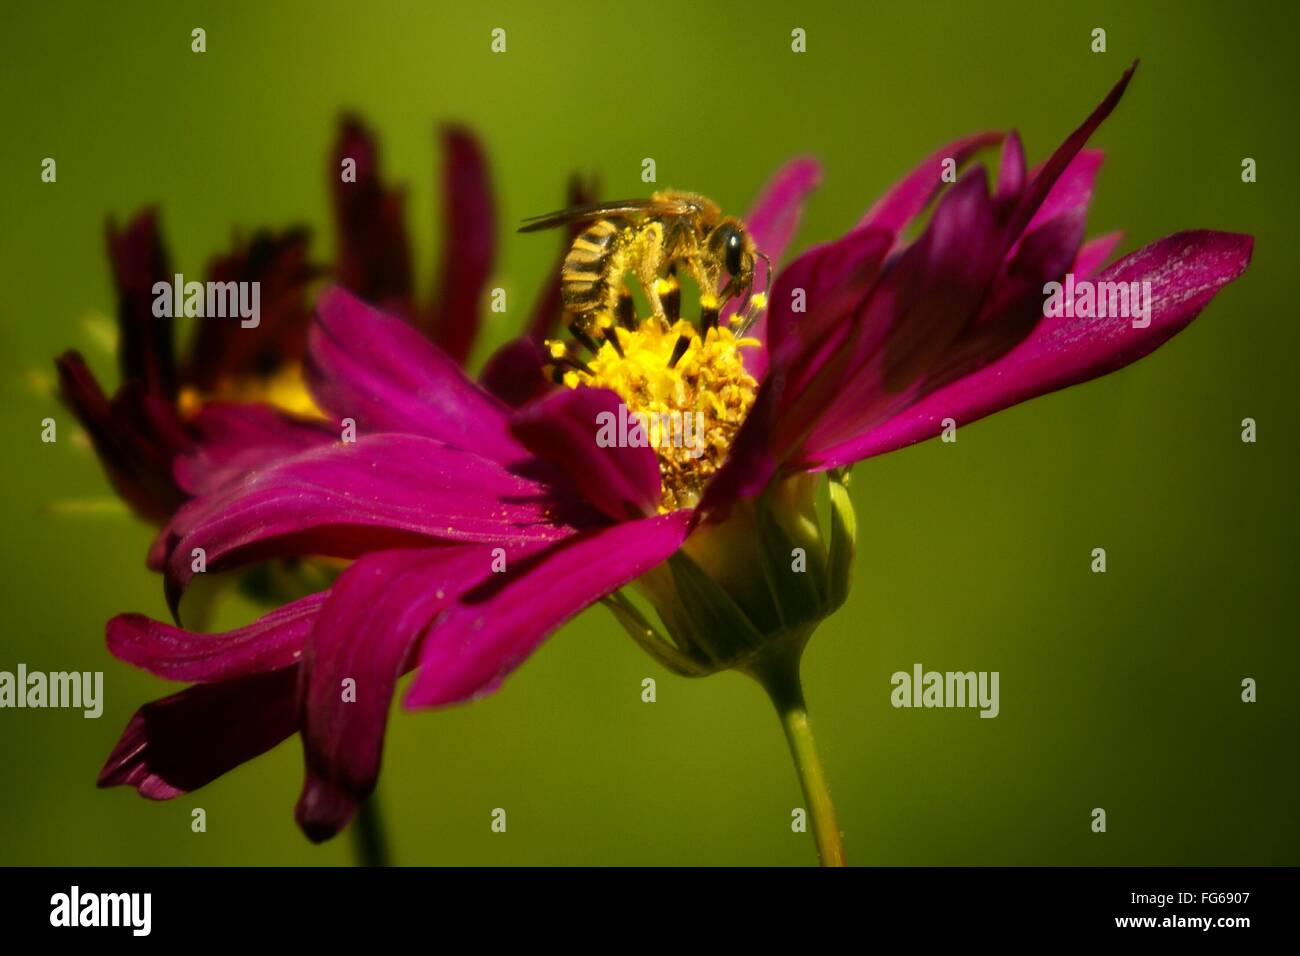 Close-Up Of Bee Pollinating On Fresh Magenta Flower In Garden - Stock Image